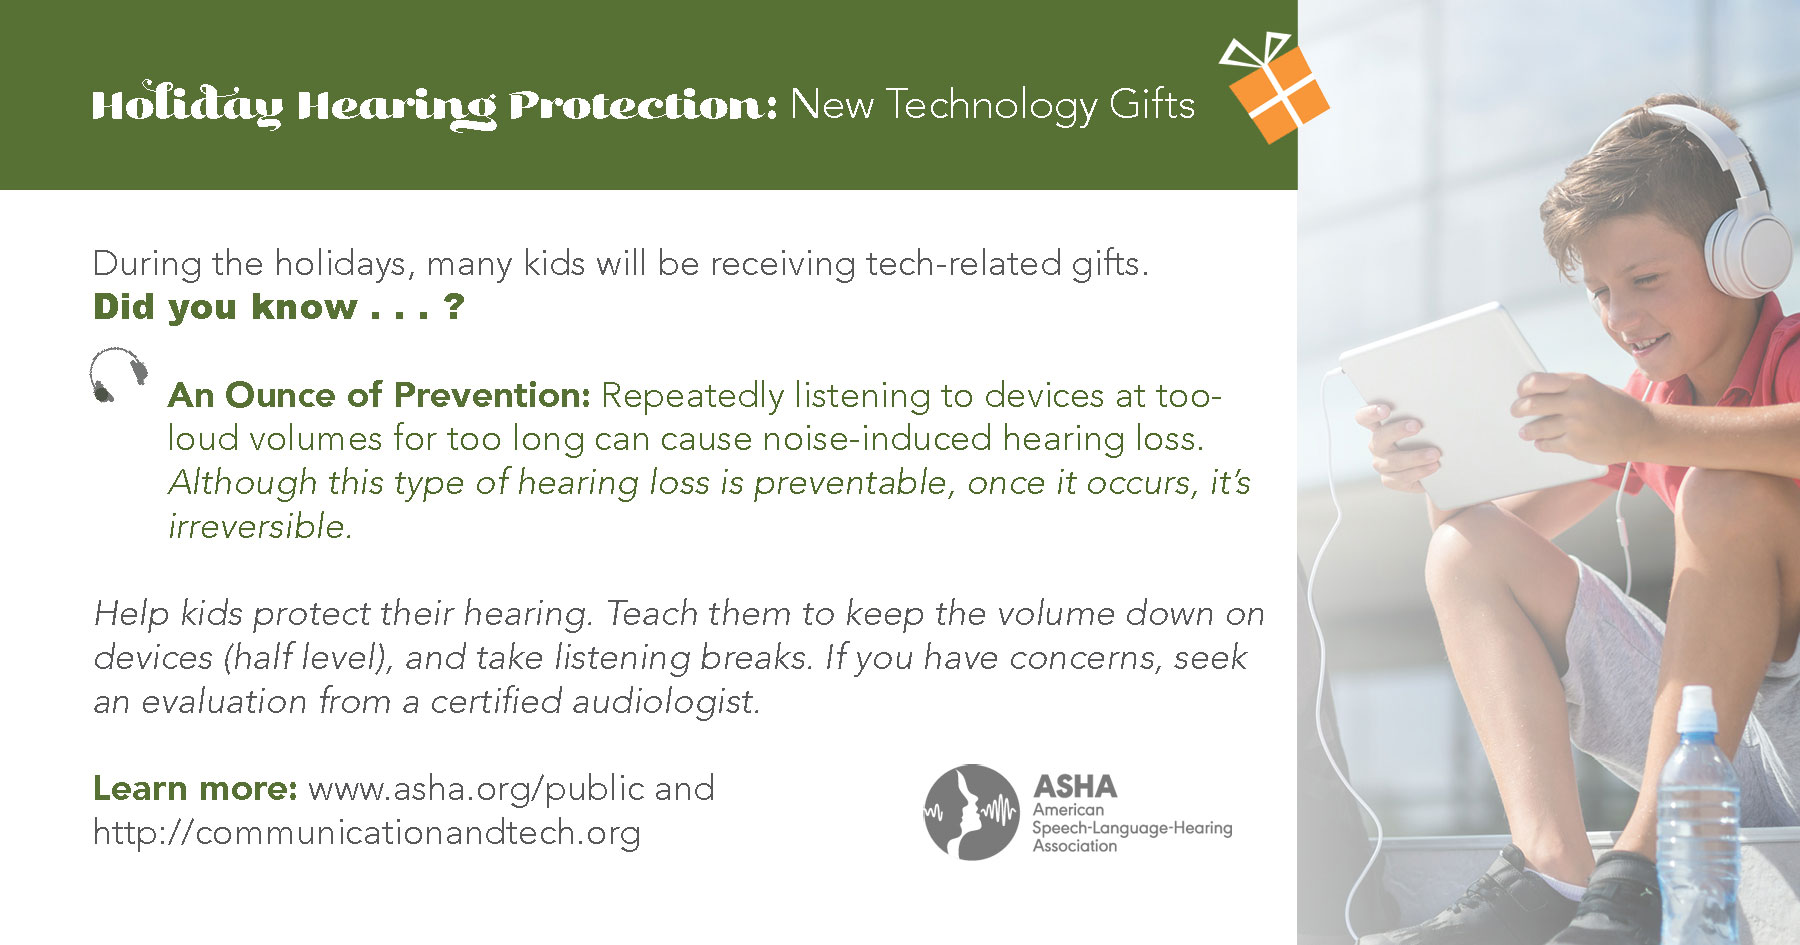 Technology & Hearing Loss: An Ounce of Prevention